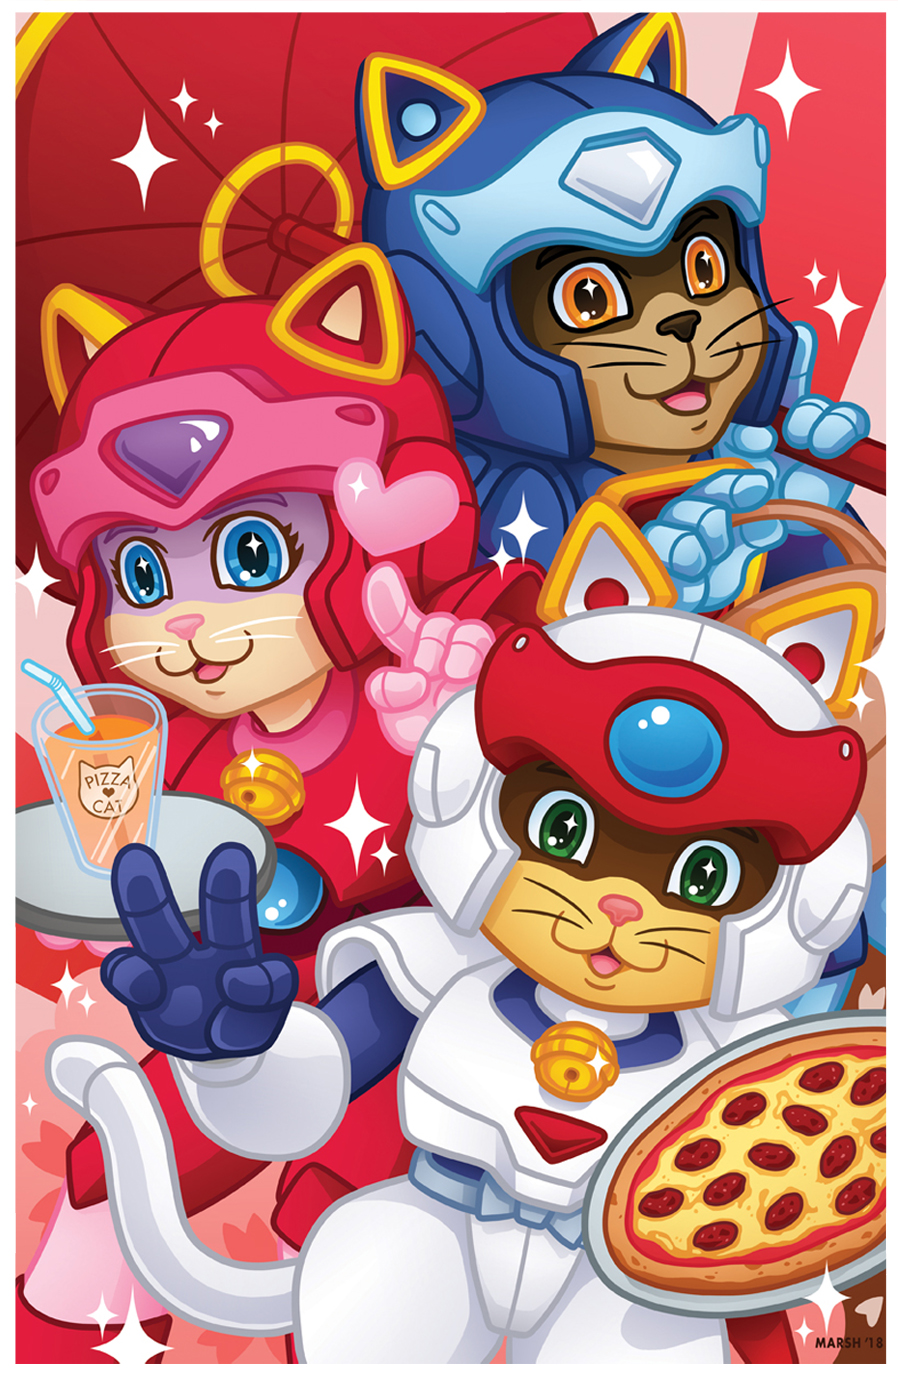 Samurai Pizza Cats! Ooh, Yeah! Started off as one of the weekly sketches that  DigiFlohw  and I do and then I totally had to finish it.